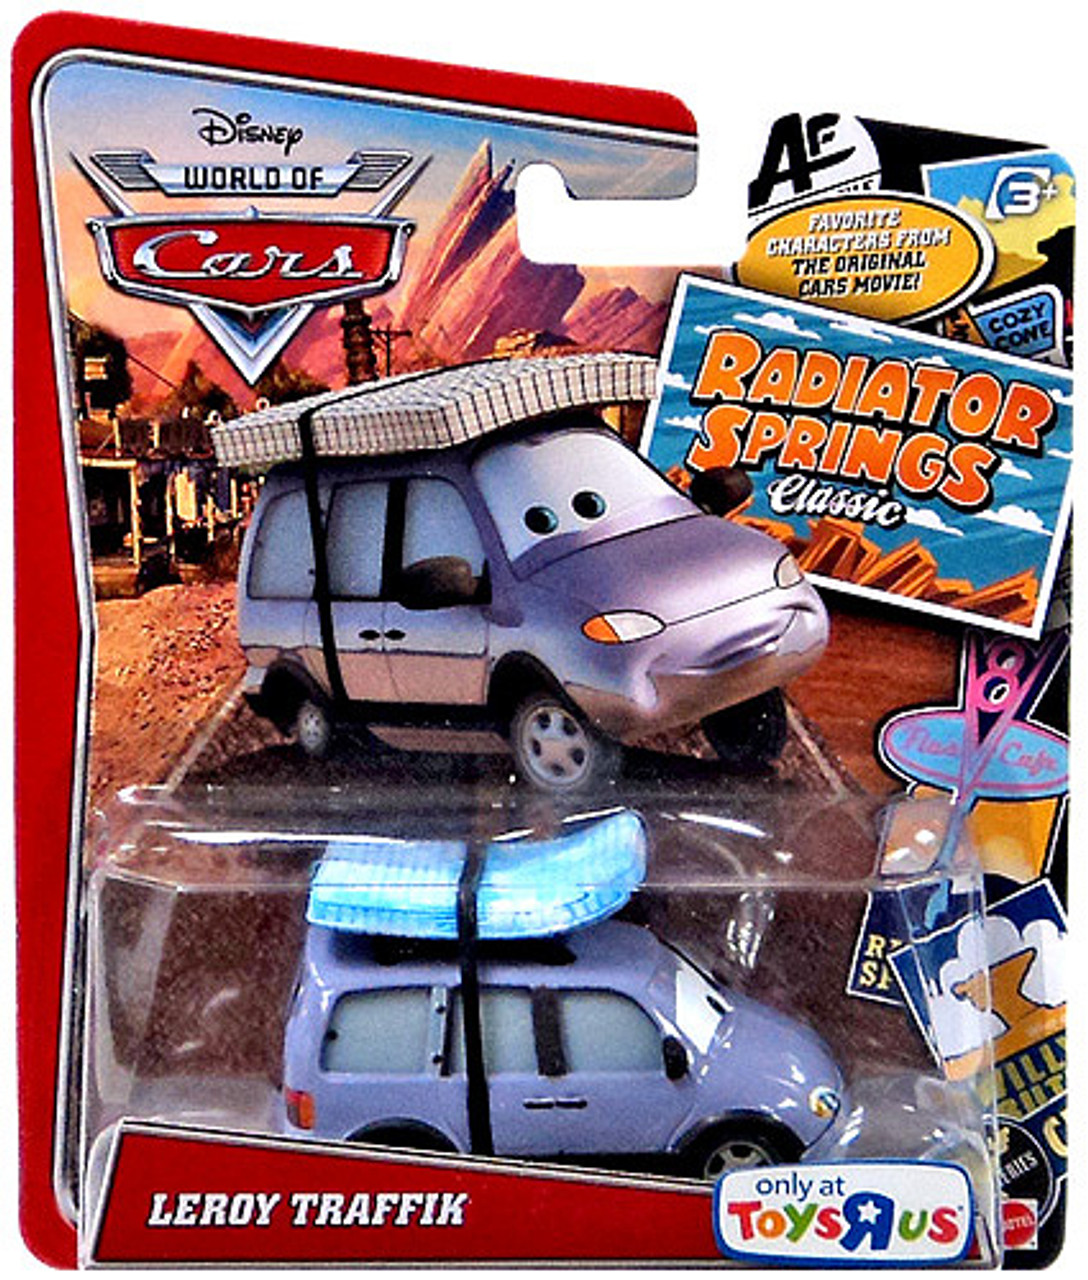 Disney Cars The World of Cars Radiator Springs Classic Leroy Traffik Exclusive Diecast Car